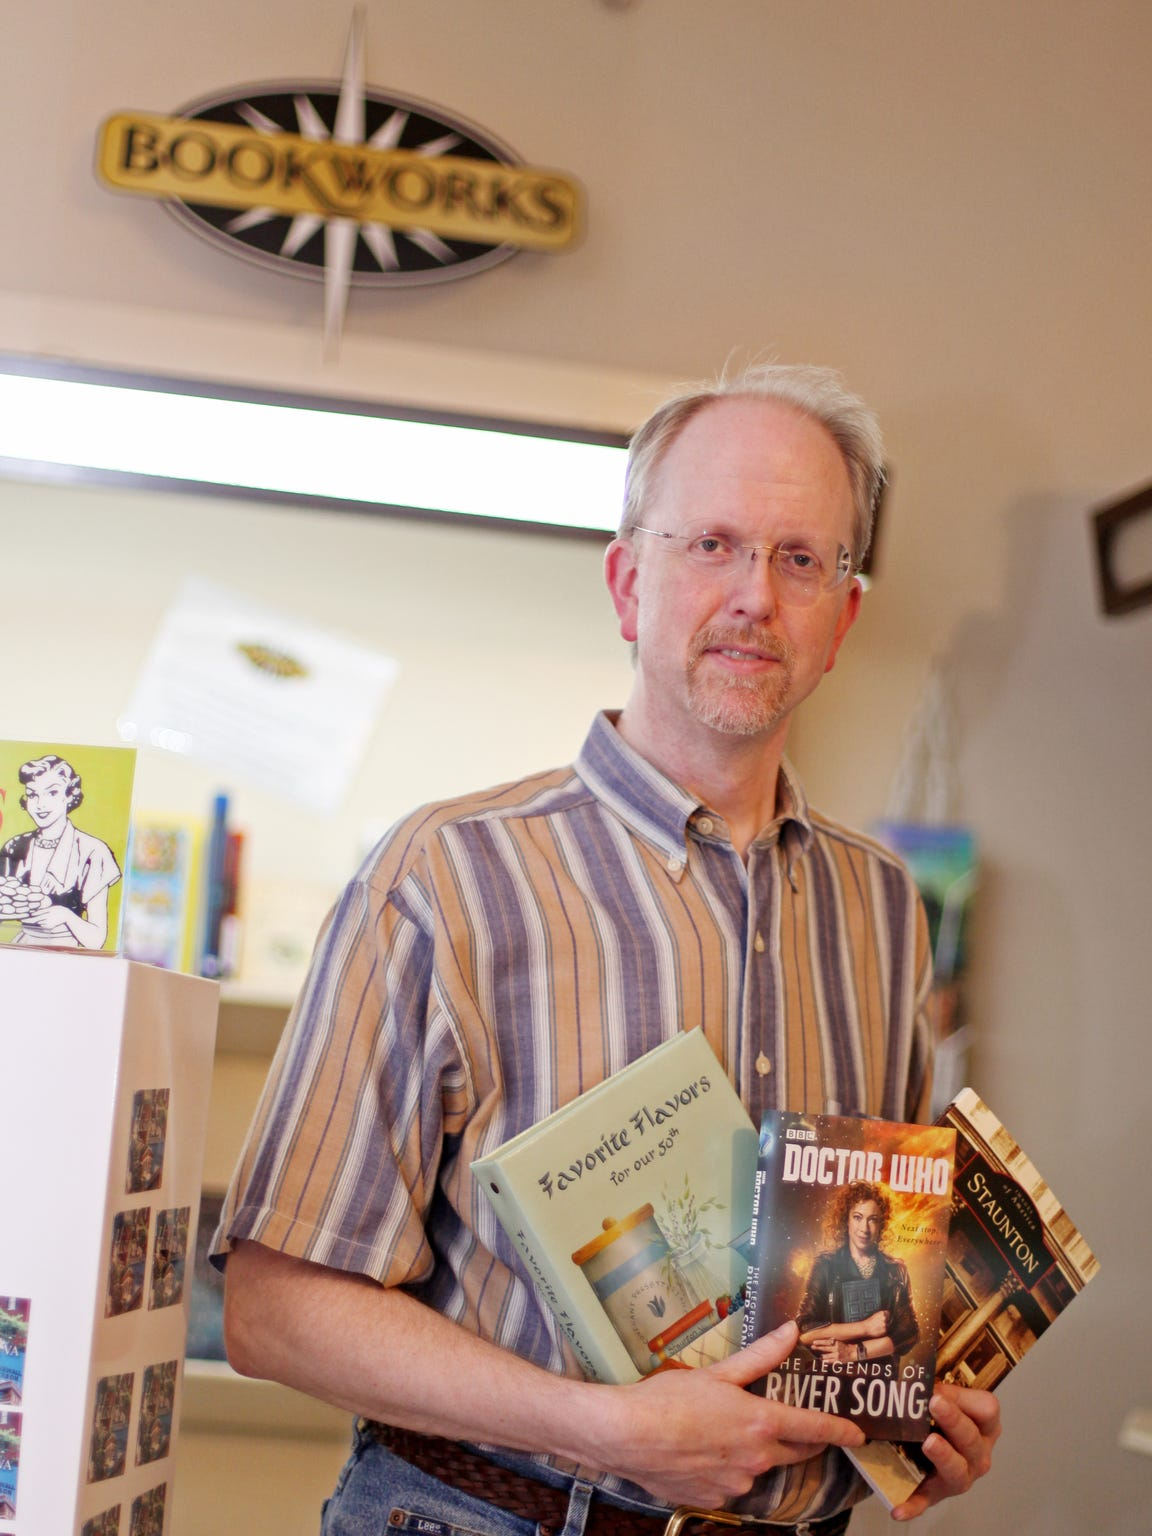 Ron Ramsey, owner of Bookworks, has a space upstairs